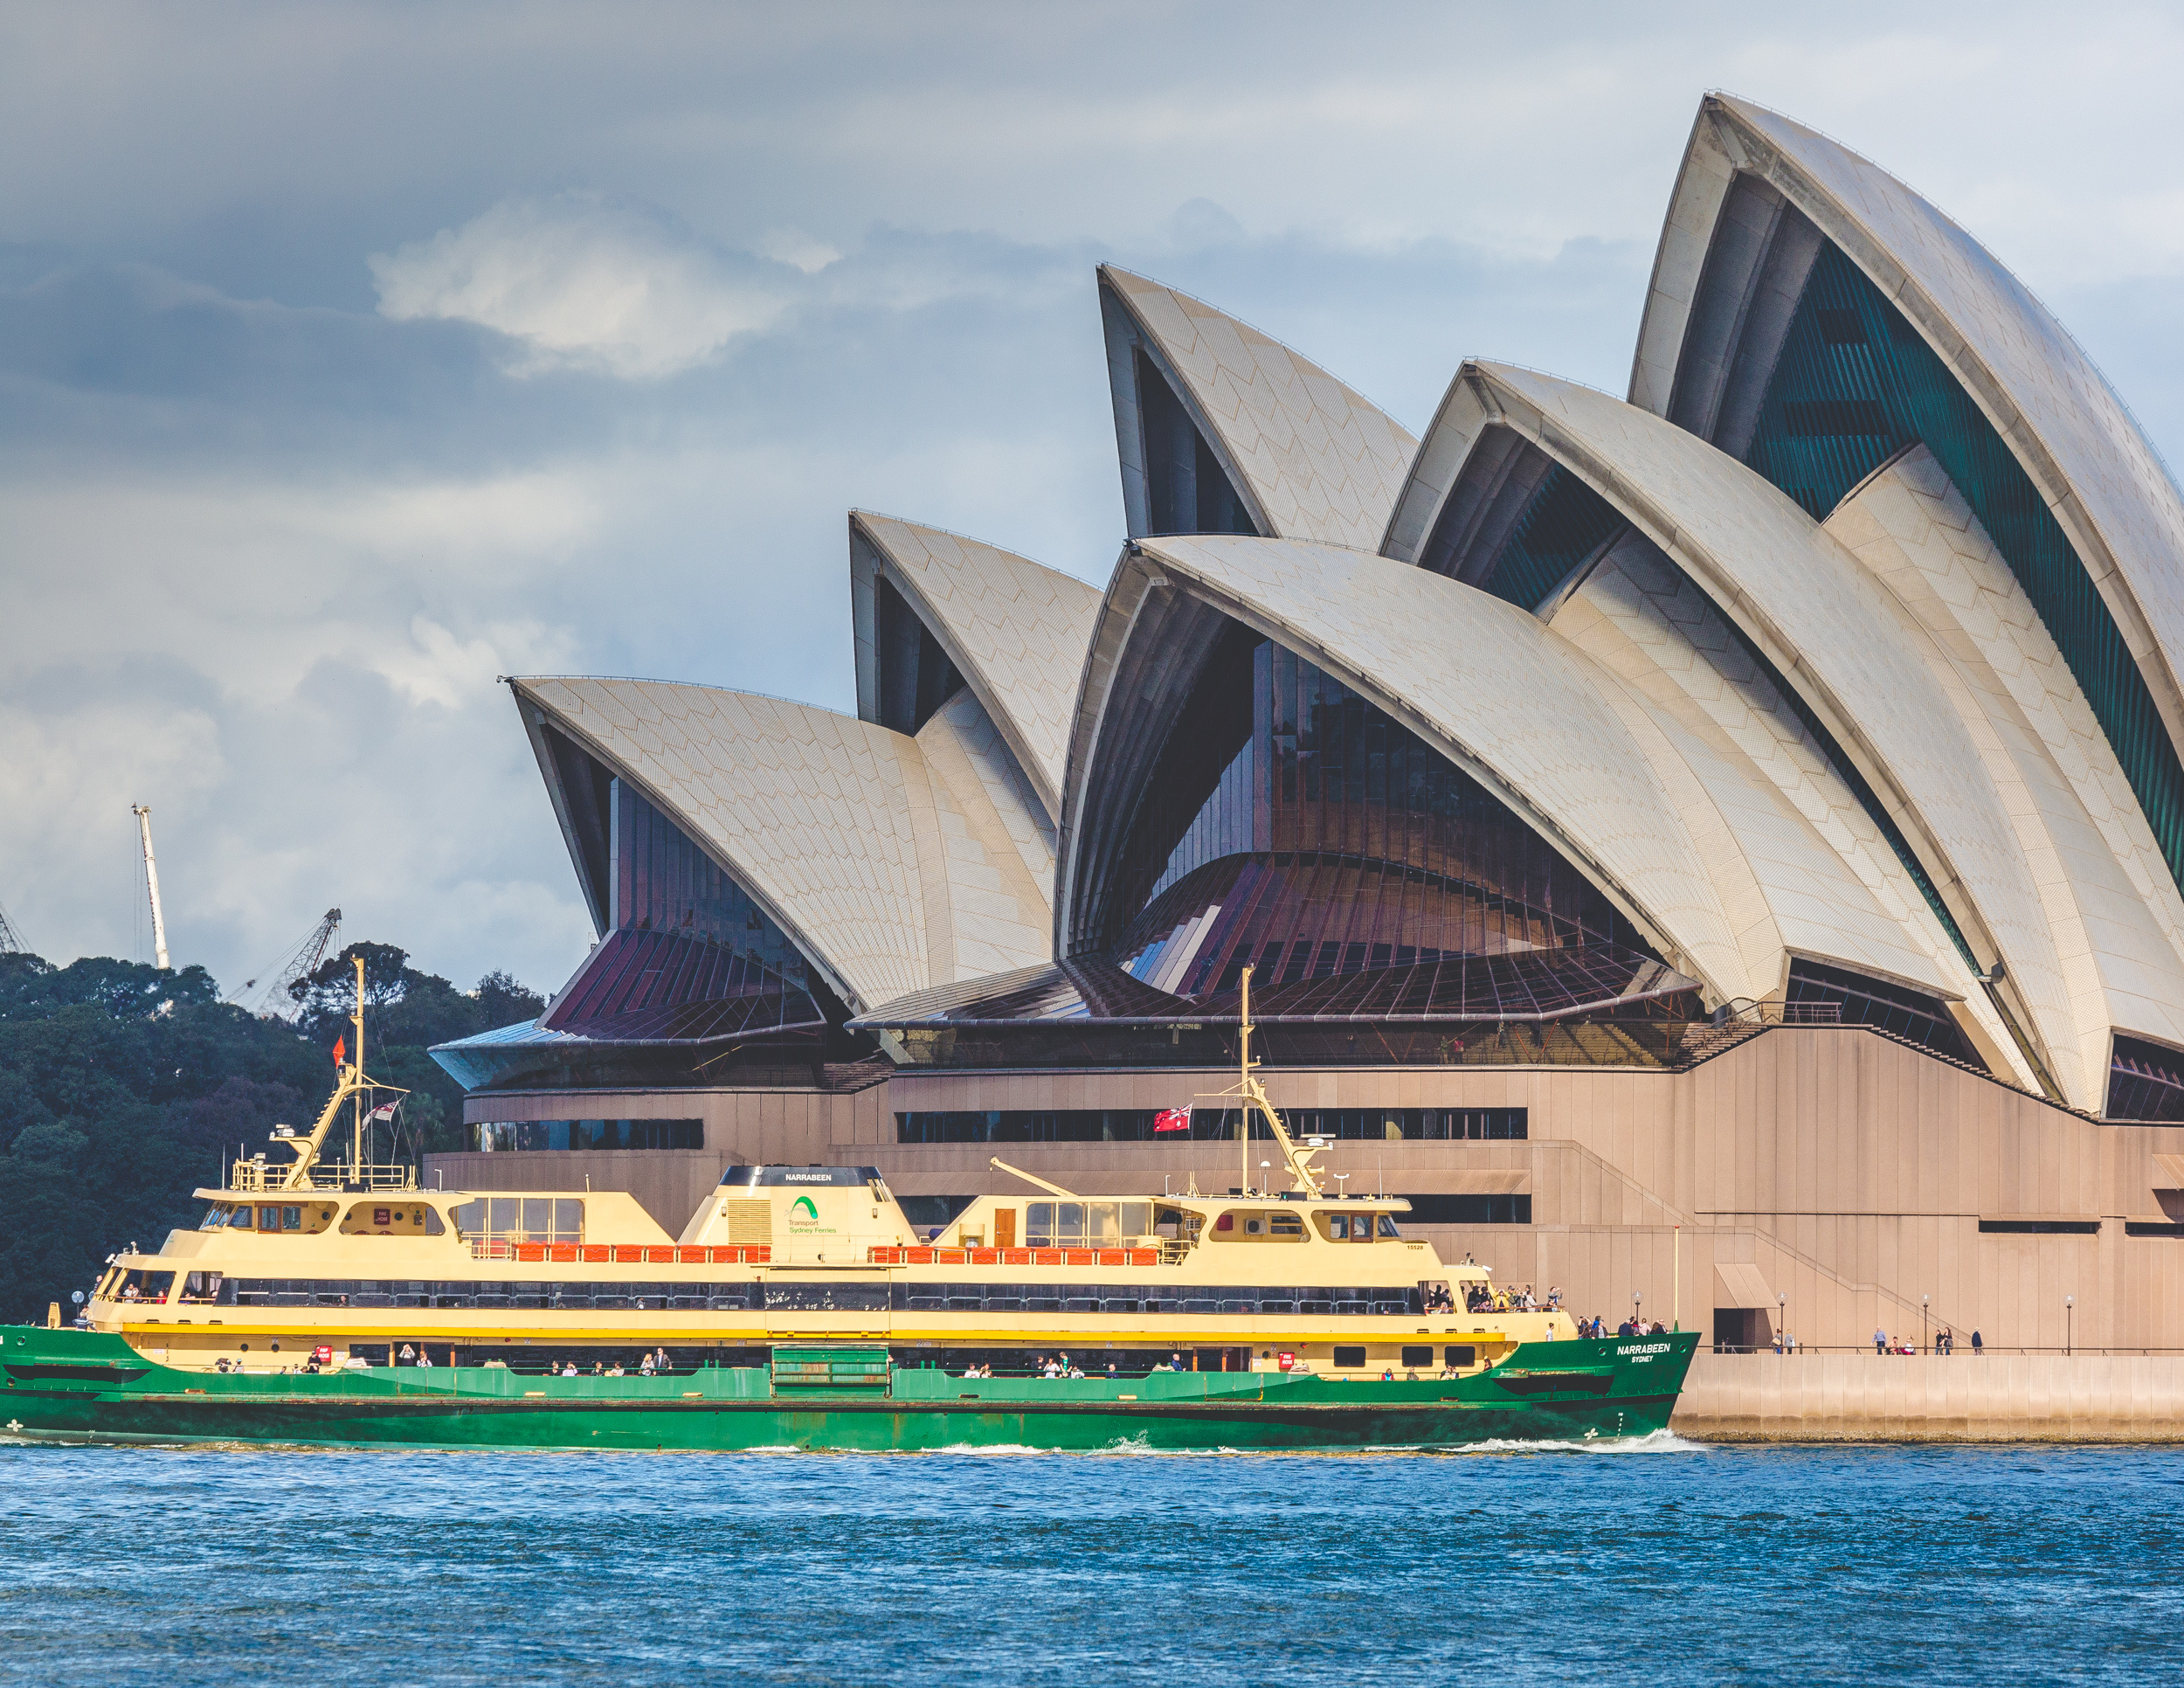 Places to visit in Sydney: Take the ferry